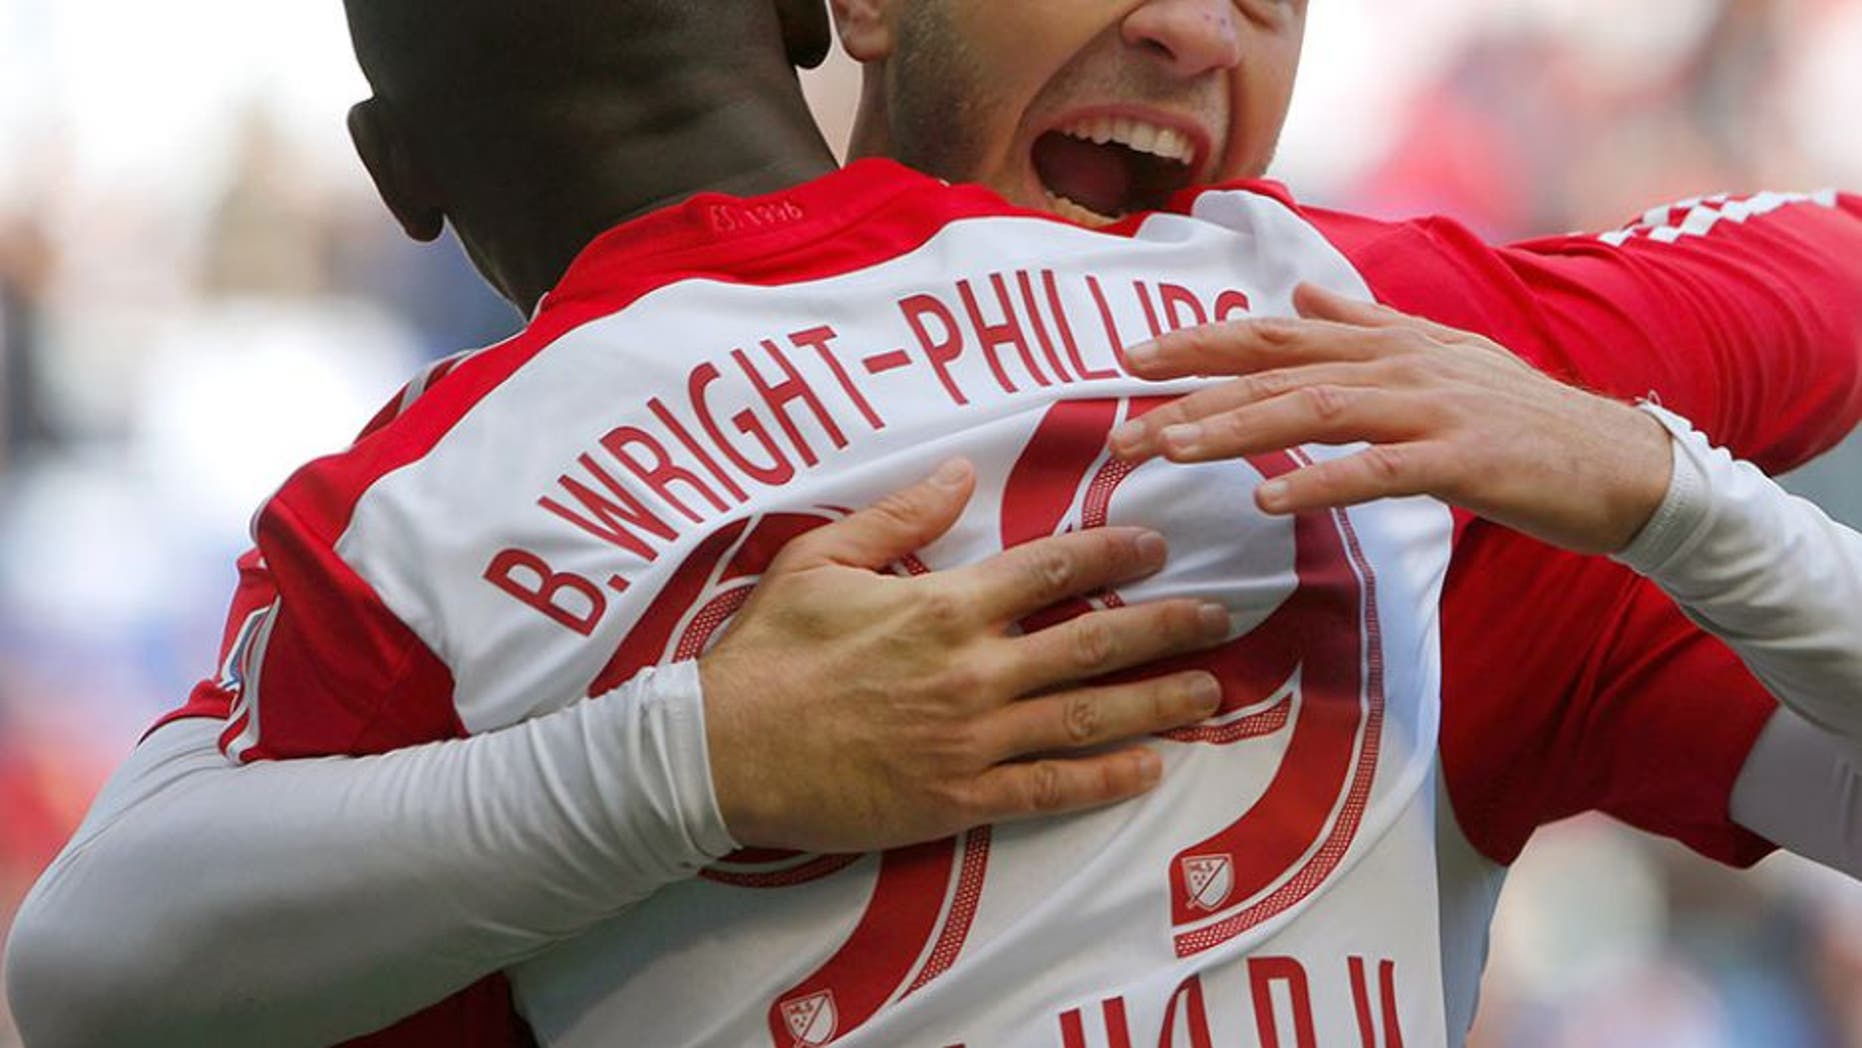 Oct 18, 2015; Harrison, NJ, USA; New York Red Bulls forward Mike Grella (13) hugs New York Red Bulls forward Bradley Wright-Phillips (99) after he scored a goal during first half against Philadelphia Union at Red Bull Arena. Mandatory Credit: Noah K. Murray-USA TODAY Sports